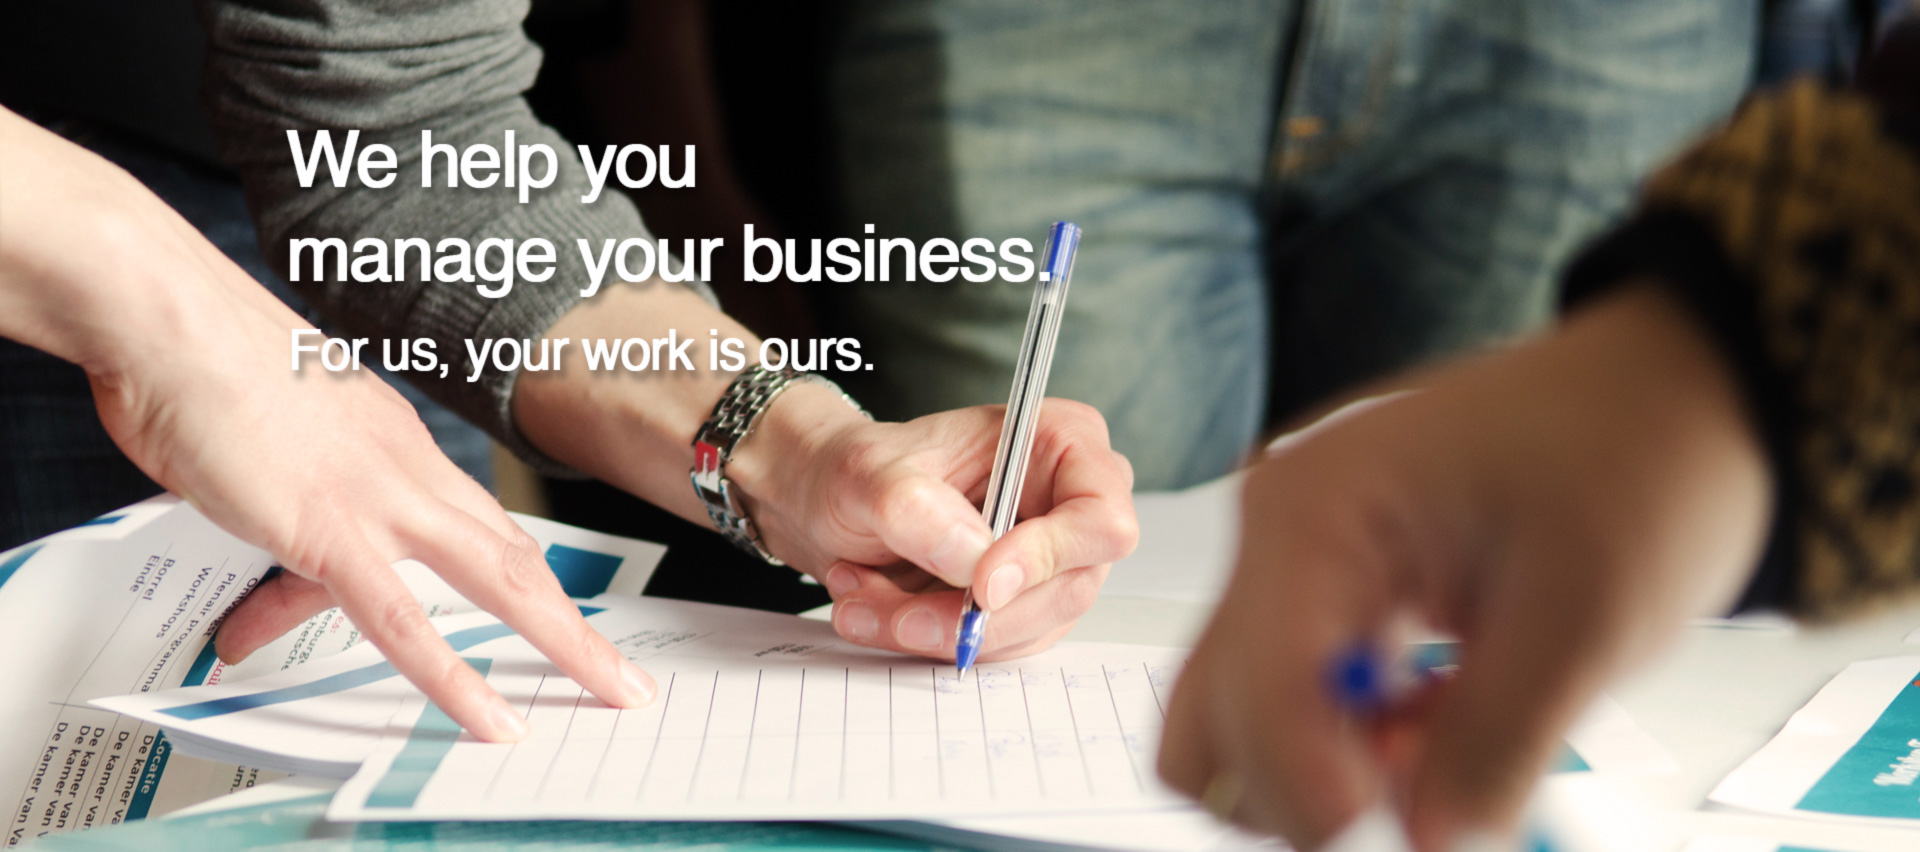 We help you manage your business.